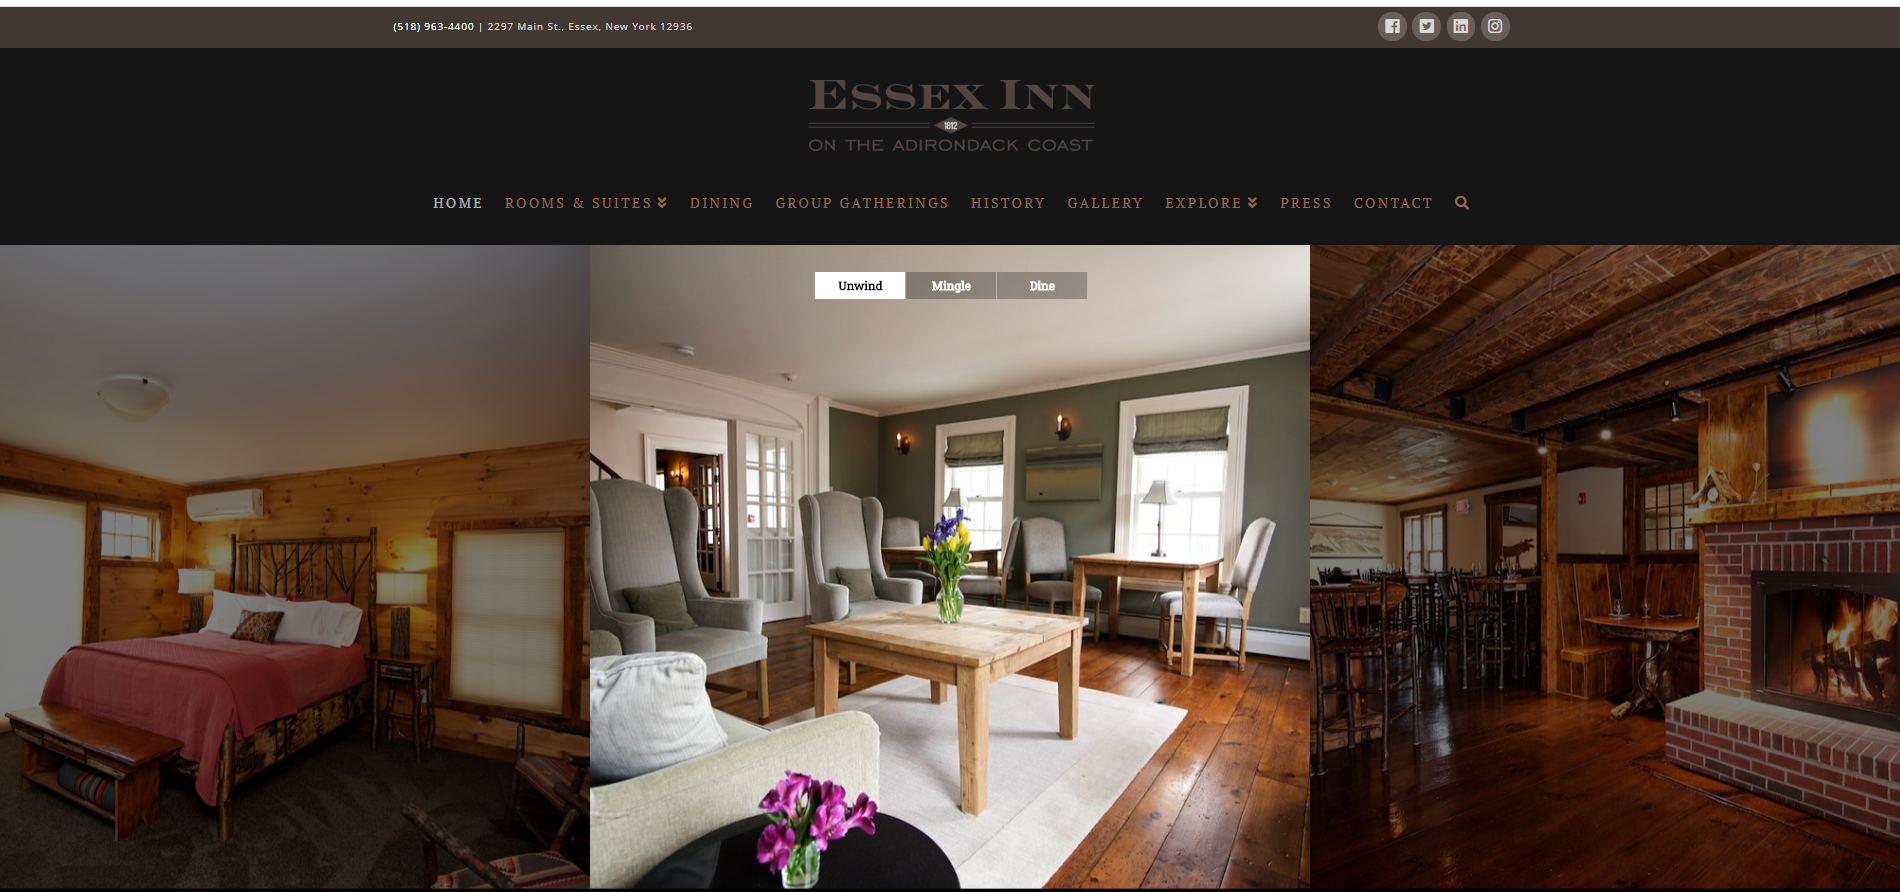 Client Project: The Essex Inn on The Adirondack Coast